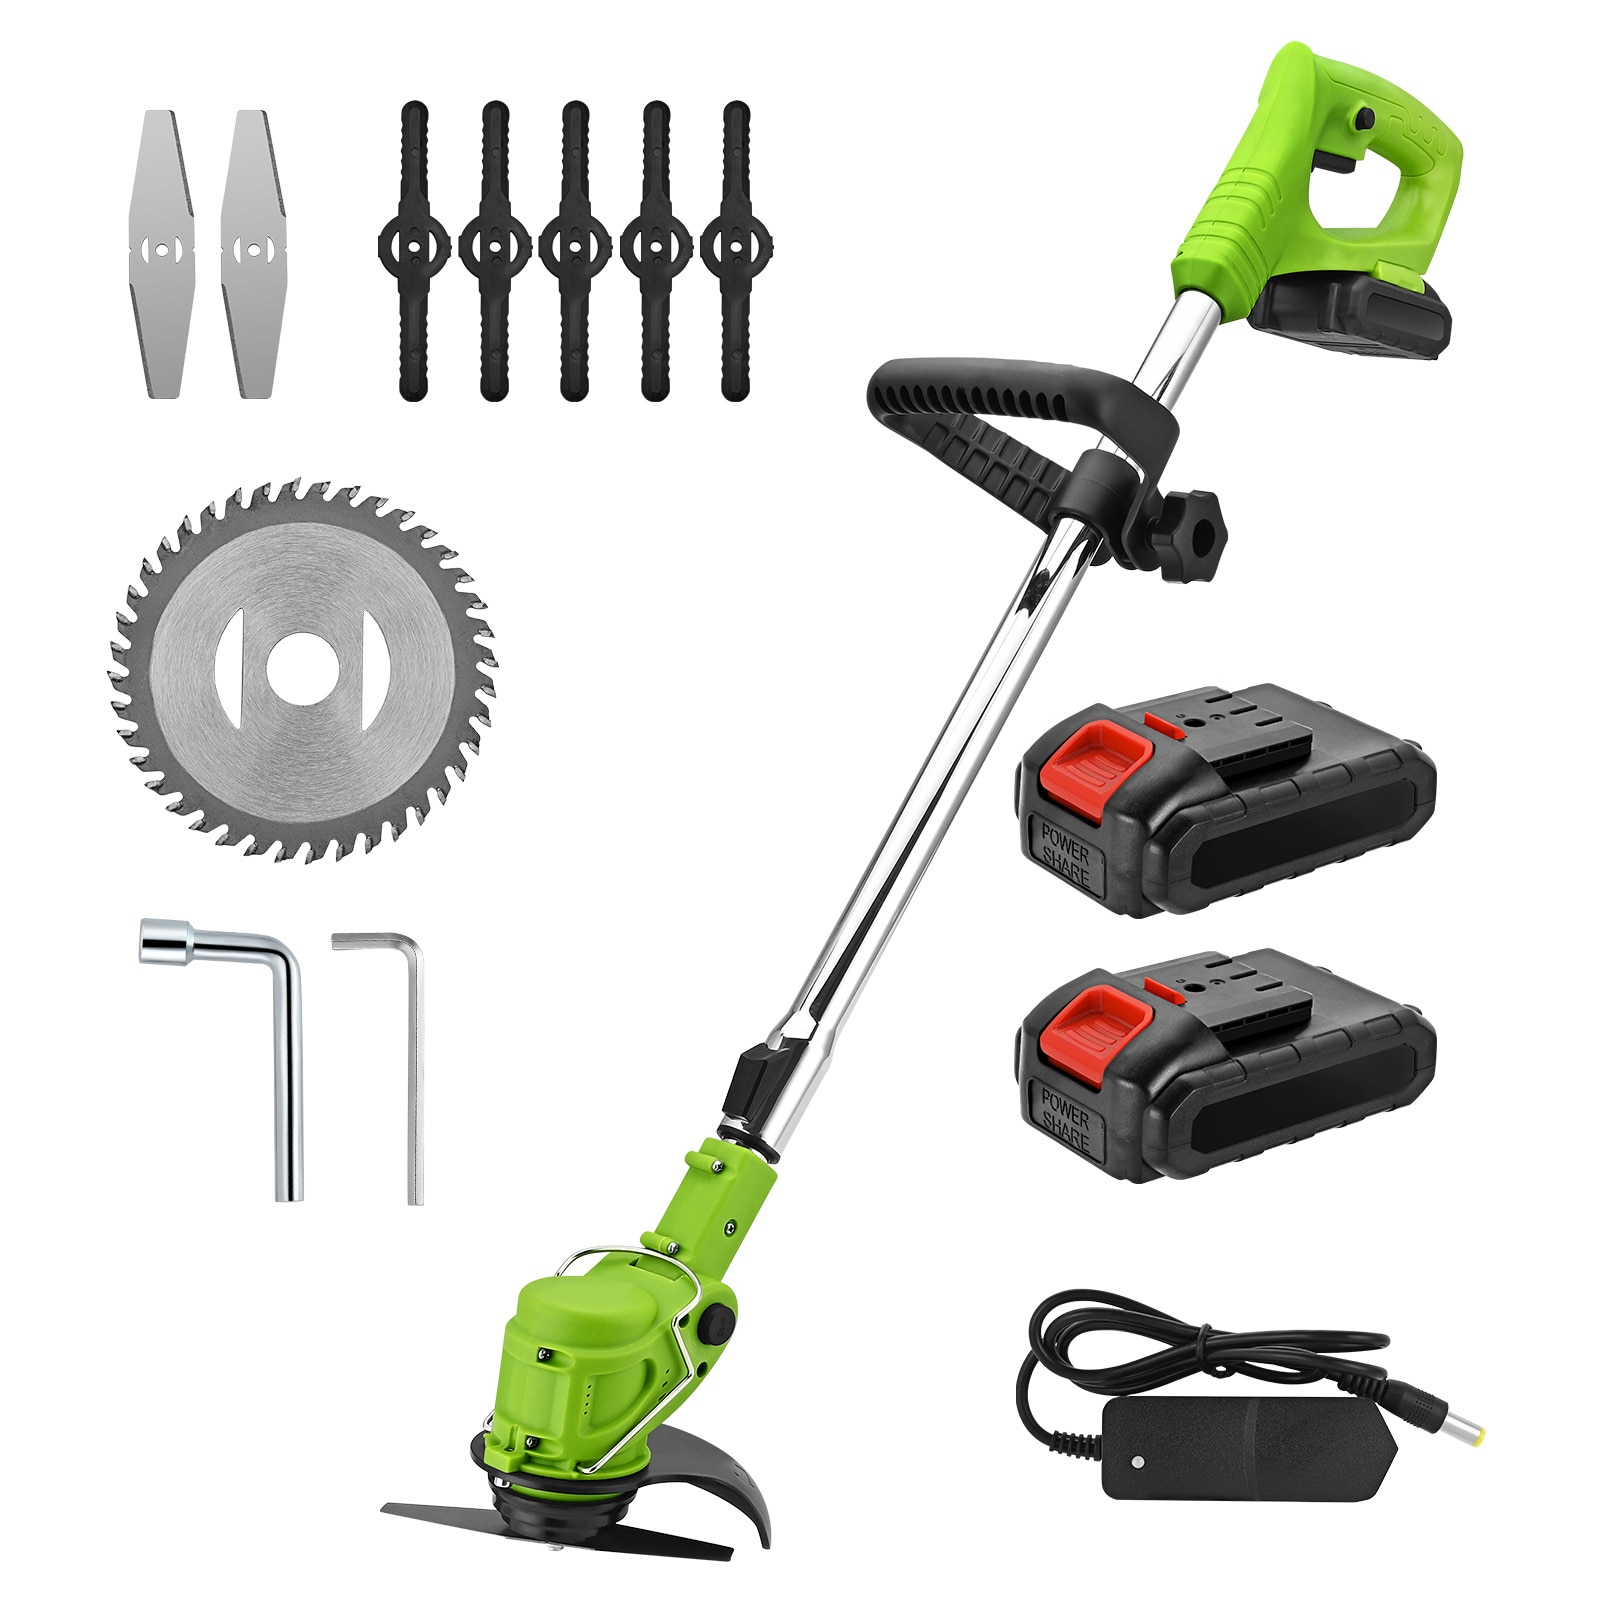 21V Electric Cordless Hedge Trimmer for Grass Trimmer Battery Lawn Mower Brush Cutter Telescopic Pole Garden Tool